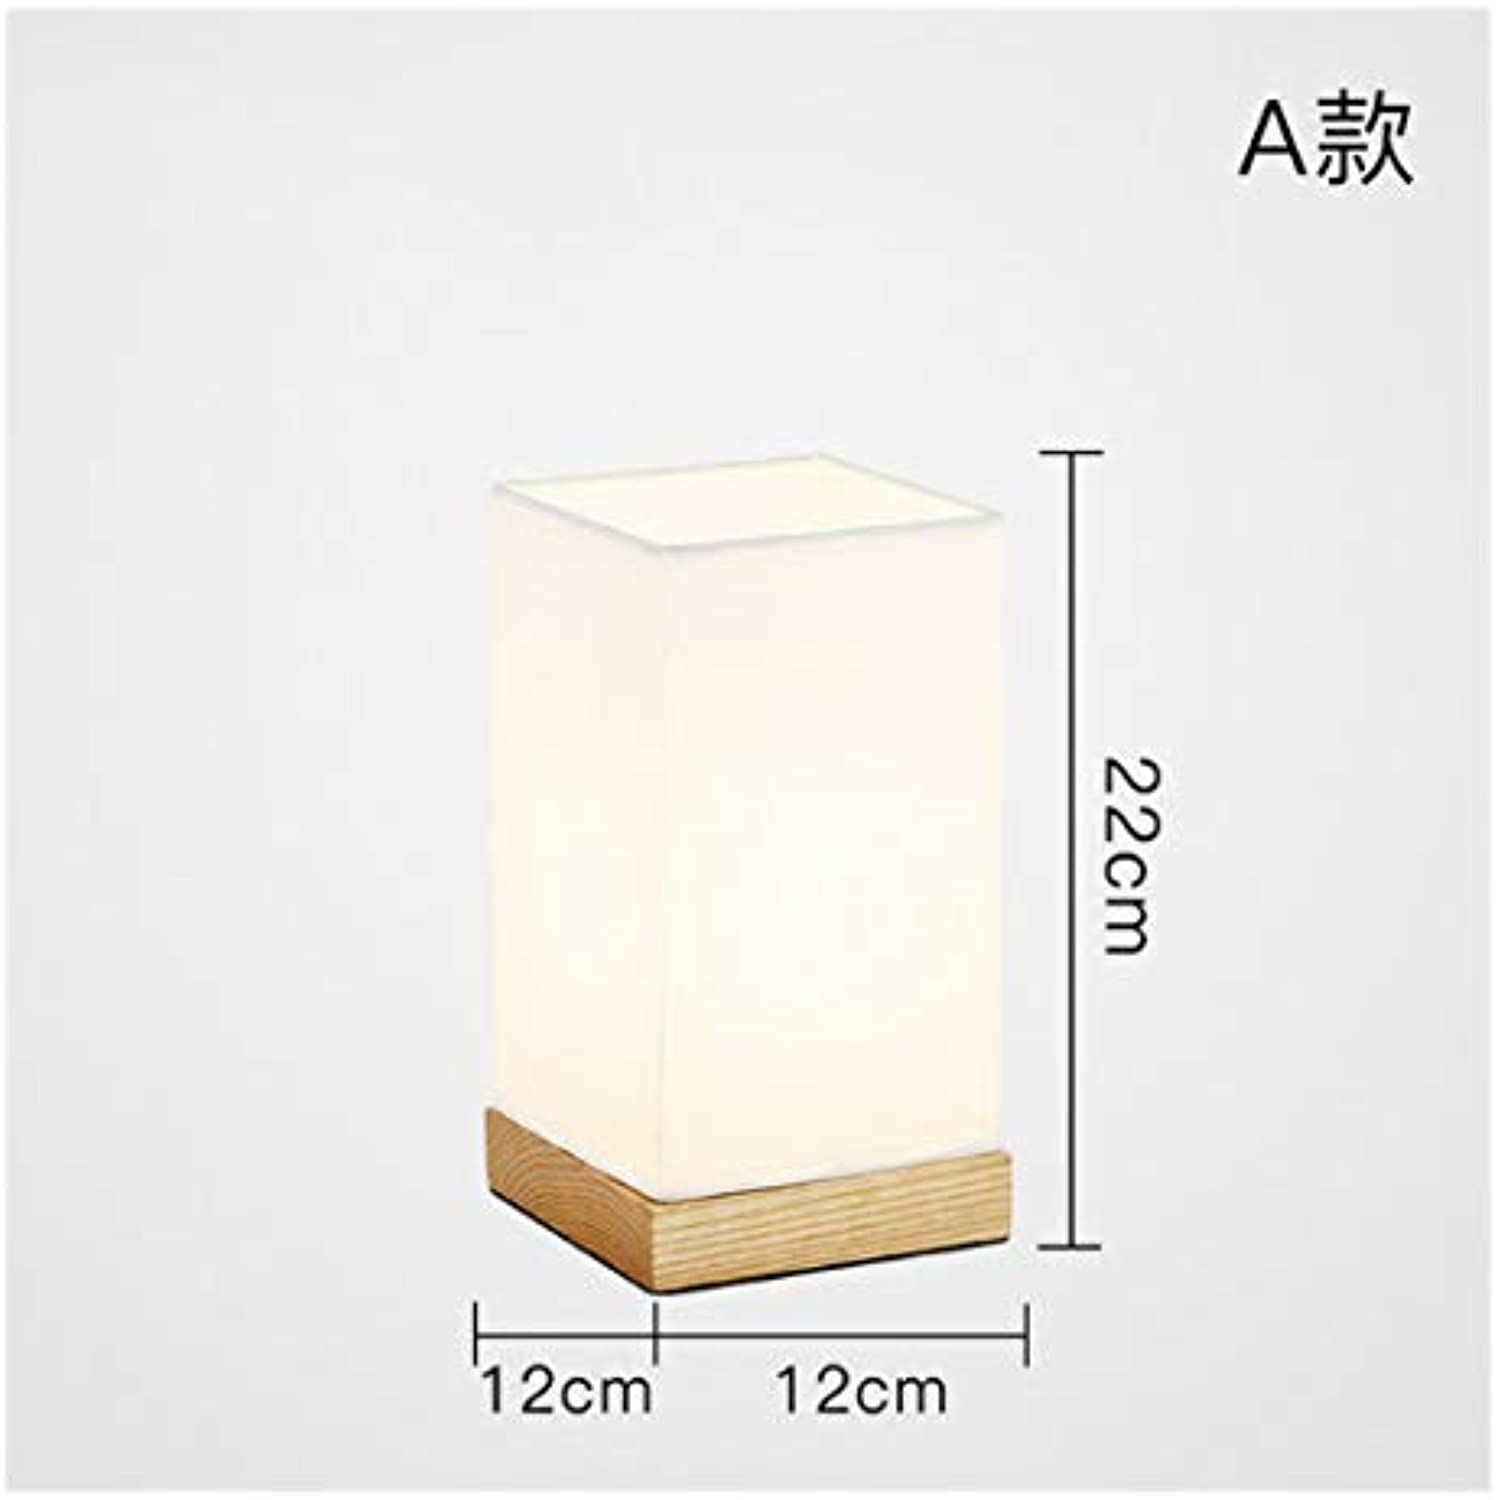 Desk Lamps Led Wood Table Lamp Wood Desk Lights Night Lamps Beside Living Room Bedroom Table Lamps Lighting Fixtures A